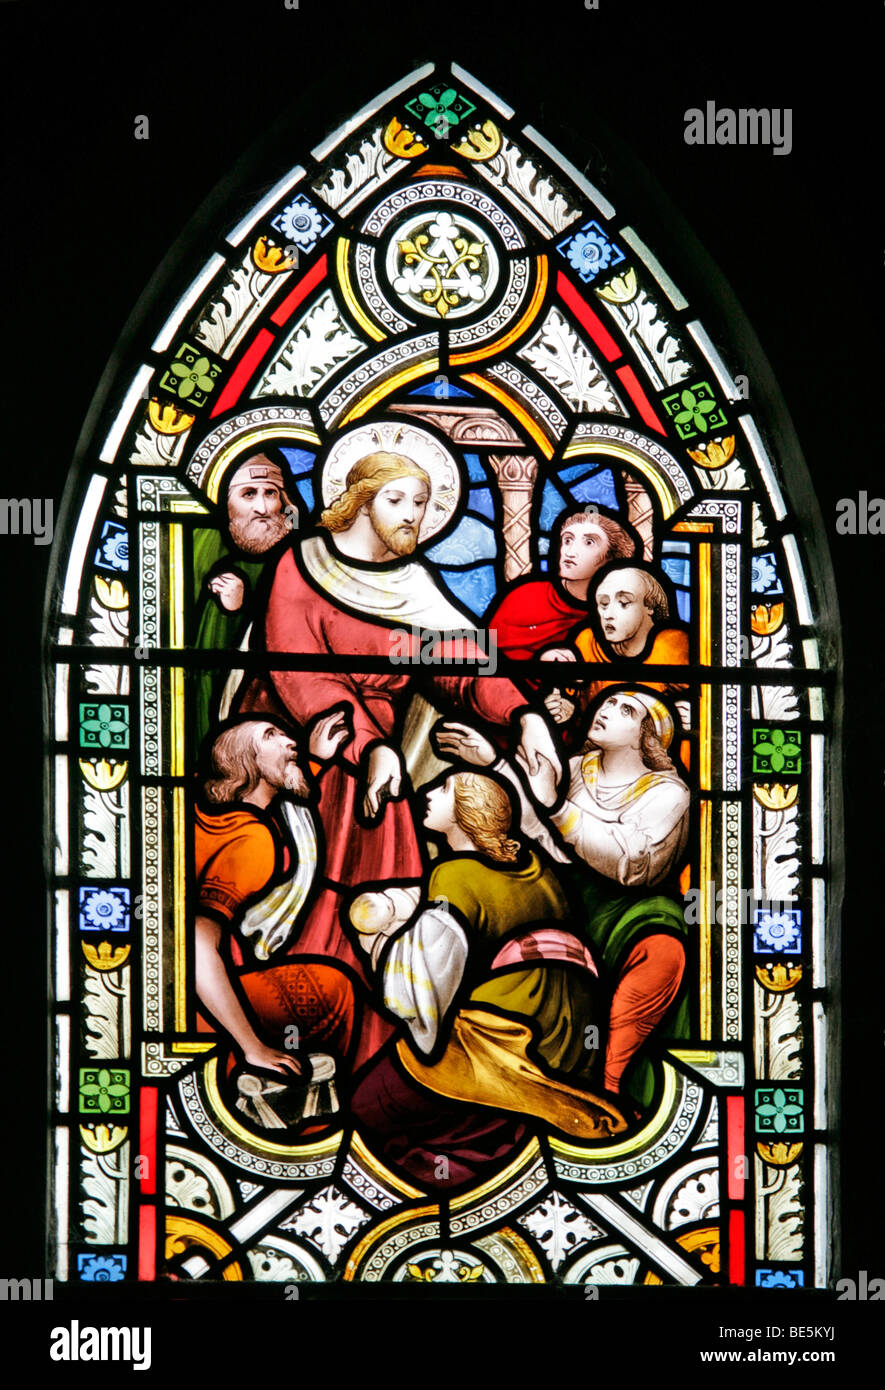 Stained Glass Window Depicting Jesus Healing The Sick St John Baptist Church South Carlton Lincolnshire